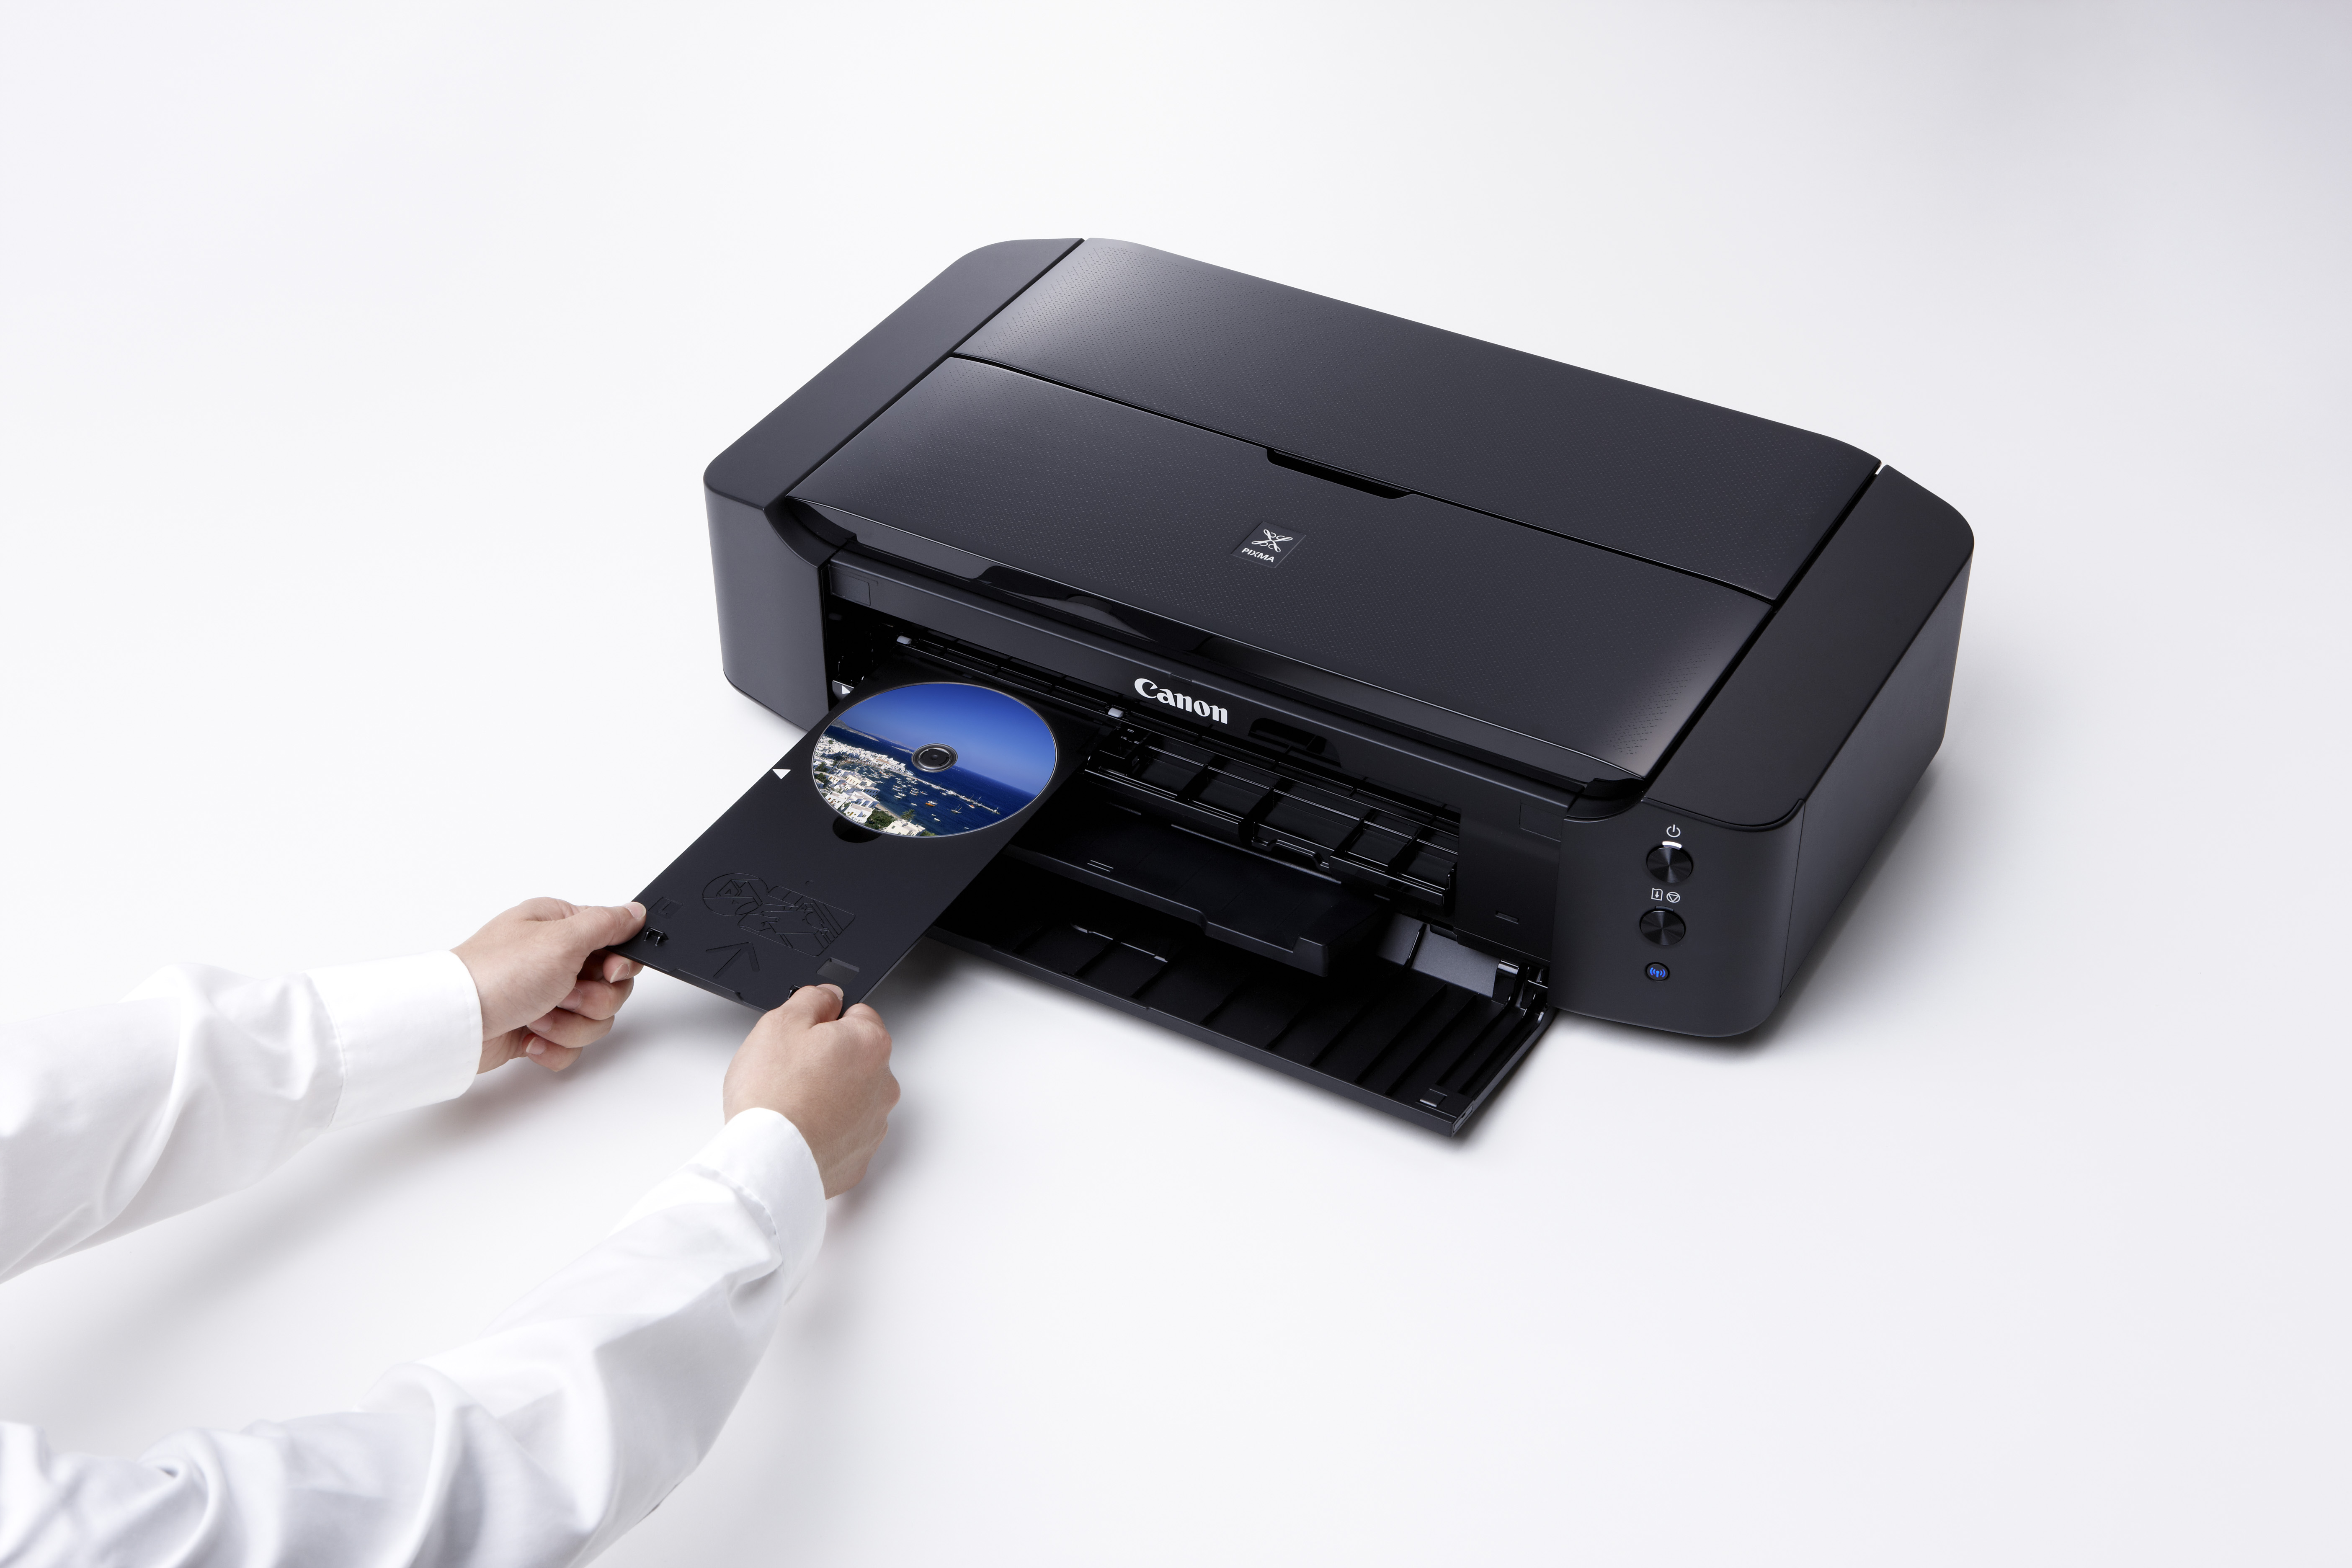 Print your memories direct to Disc